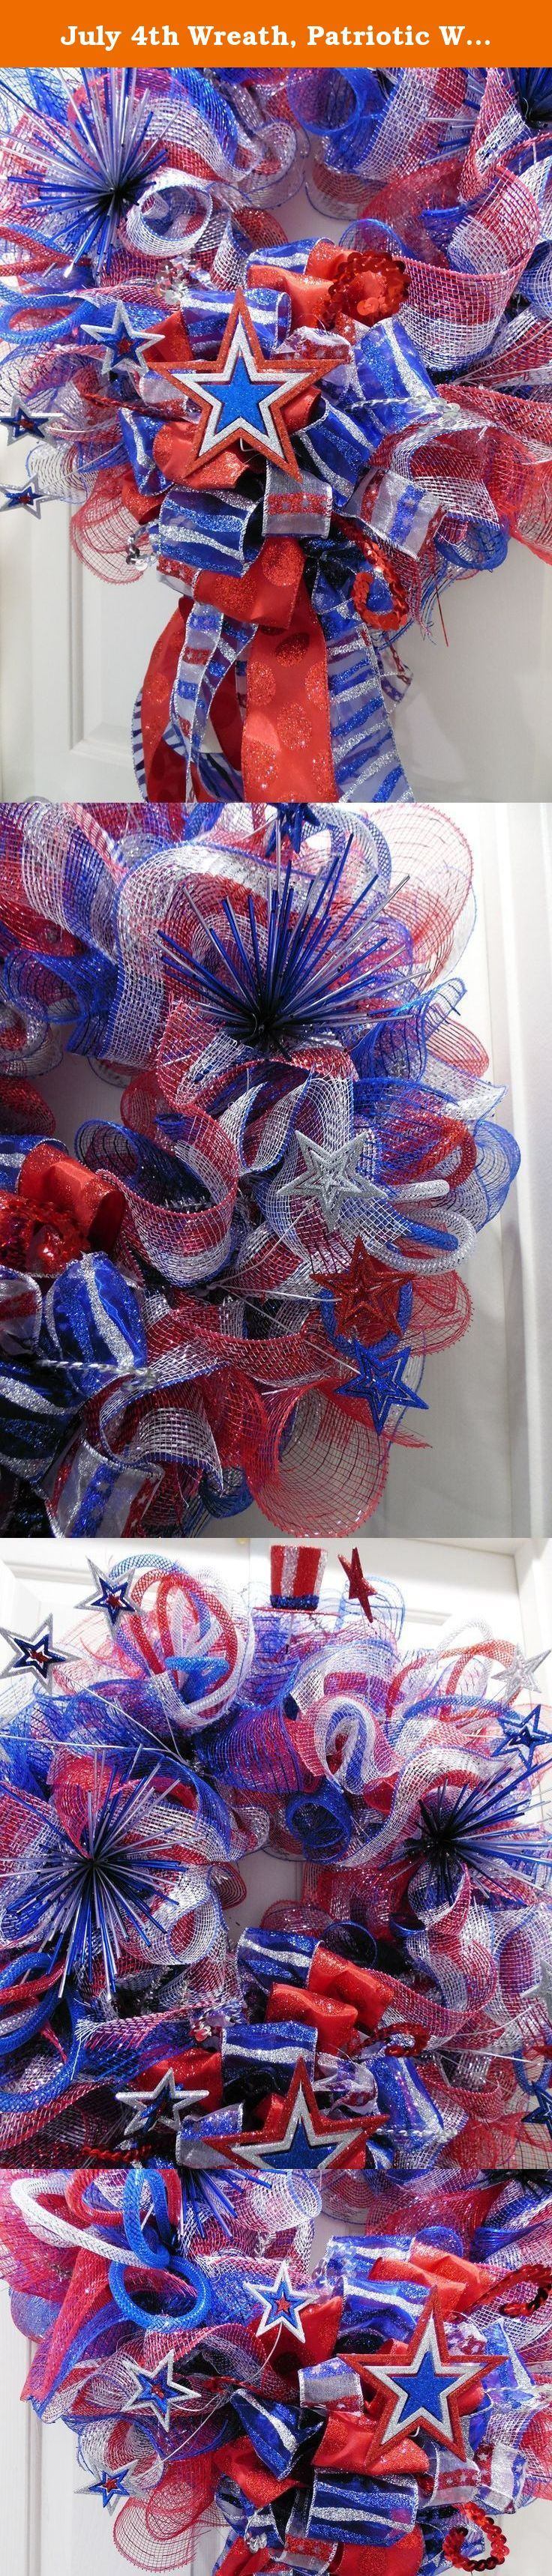 July 4th Wreath, Patriotic Wreath, Stars and Stripes Wreath, American Flag Wreath, Independence Day Wreath, Military Wreath, Red Blue Silver. Celebrate Independence with this Patriotic Deco mesh wreath in Red, Blue and Siver. Made on a 16' wire work wreath, this 4th of July special is made with deco mesh using the ruffle method. It is adorned with lots of spectacular goodies to celebrate the season such as: red, silver and blue ribbons, red silver and blue decomesh tubing, glittered stars…